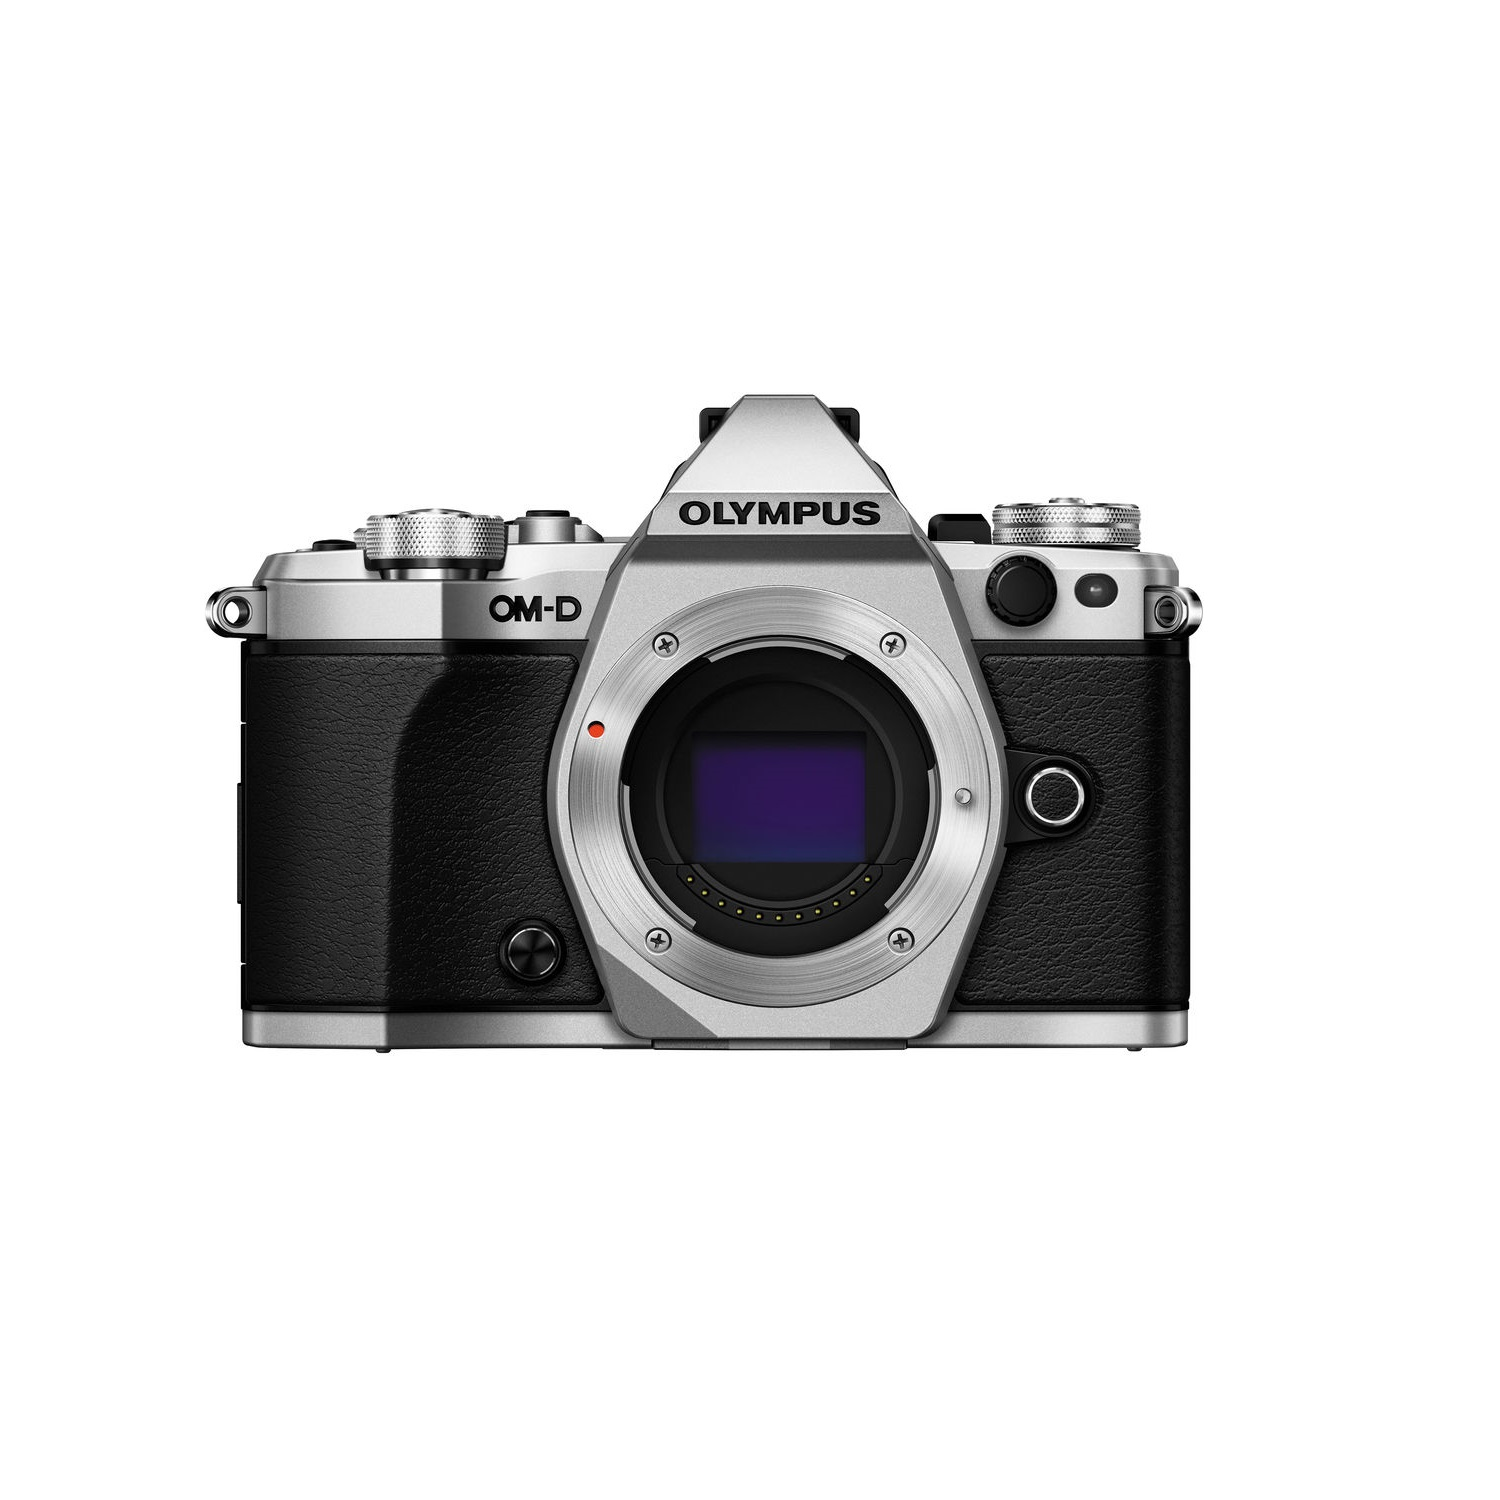 Olympus OM-D E-M5 Mark II Mirrorless Camera (Body Only), Silver by Olympus